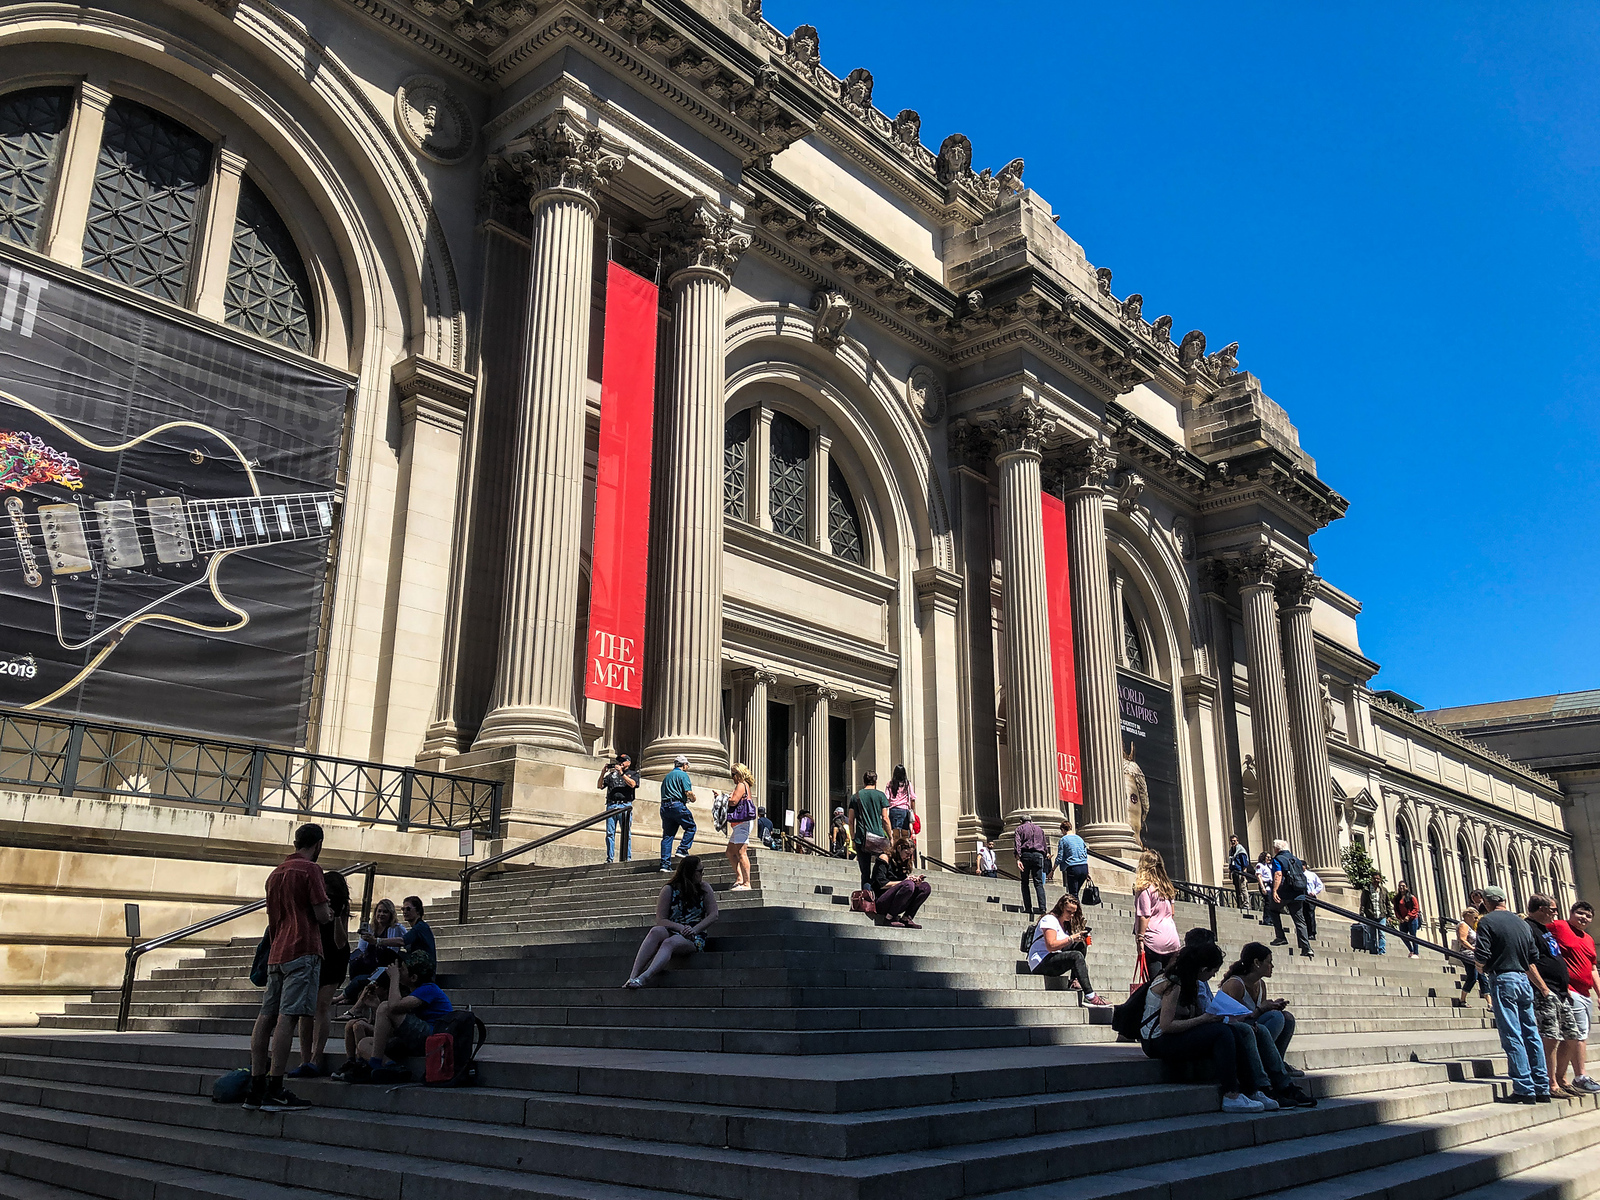 the met will teach you how to recover after a breakup